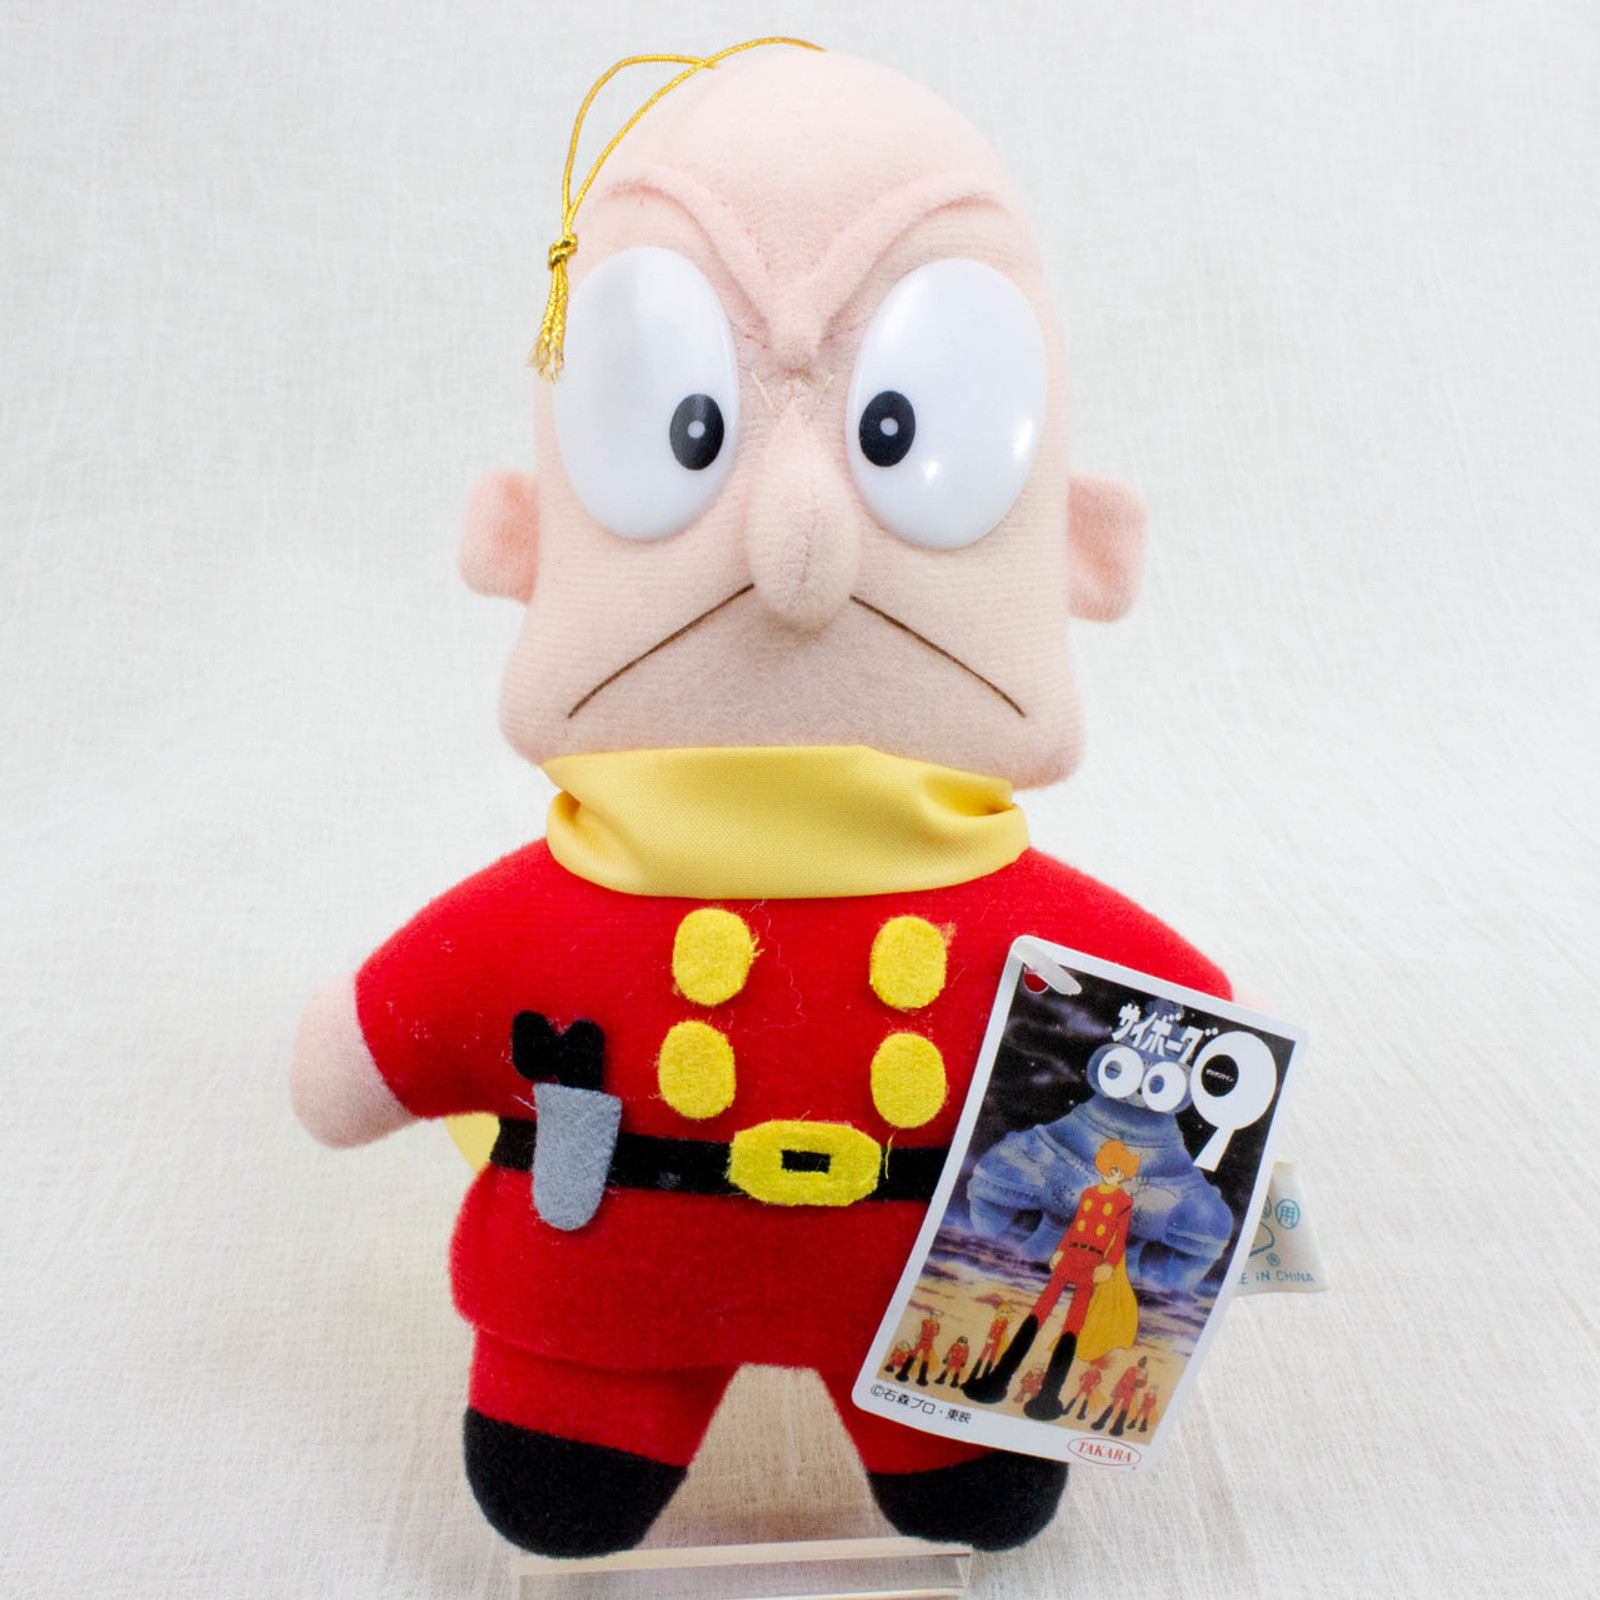 Cyborg 009 Great Britain 007 Plush Doll TAKARA 1992 JAPAN ANIME MANGA